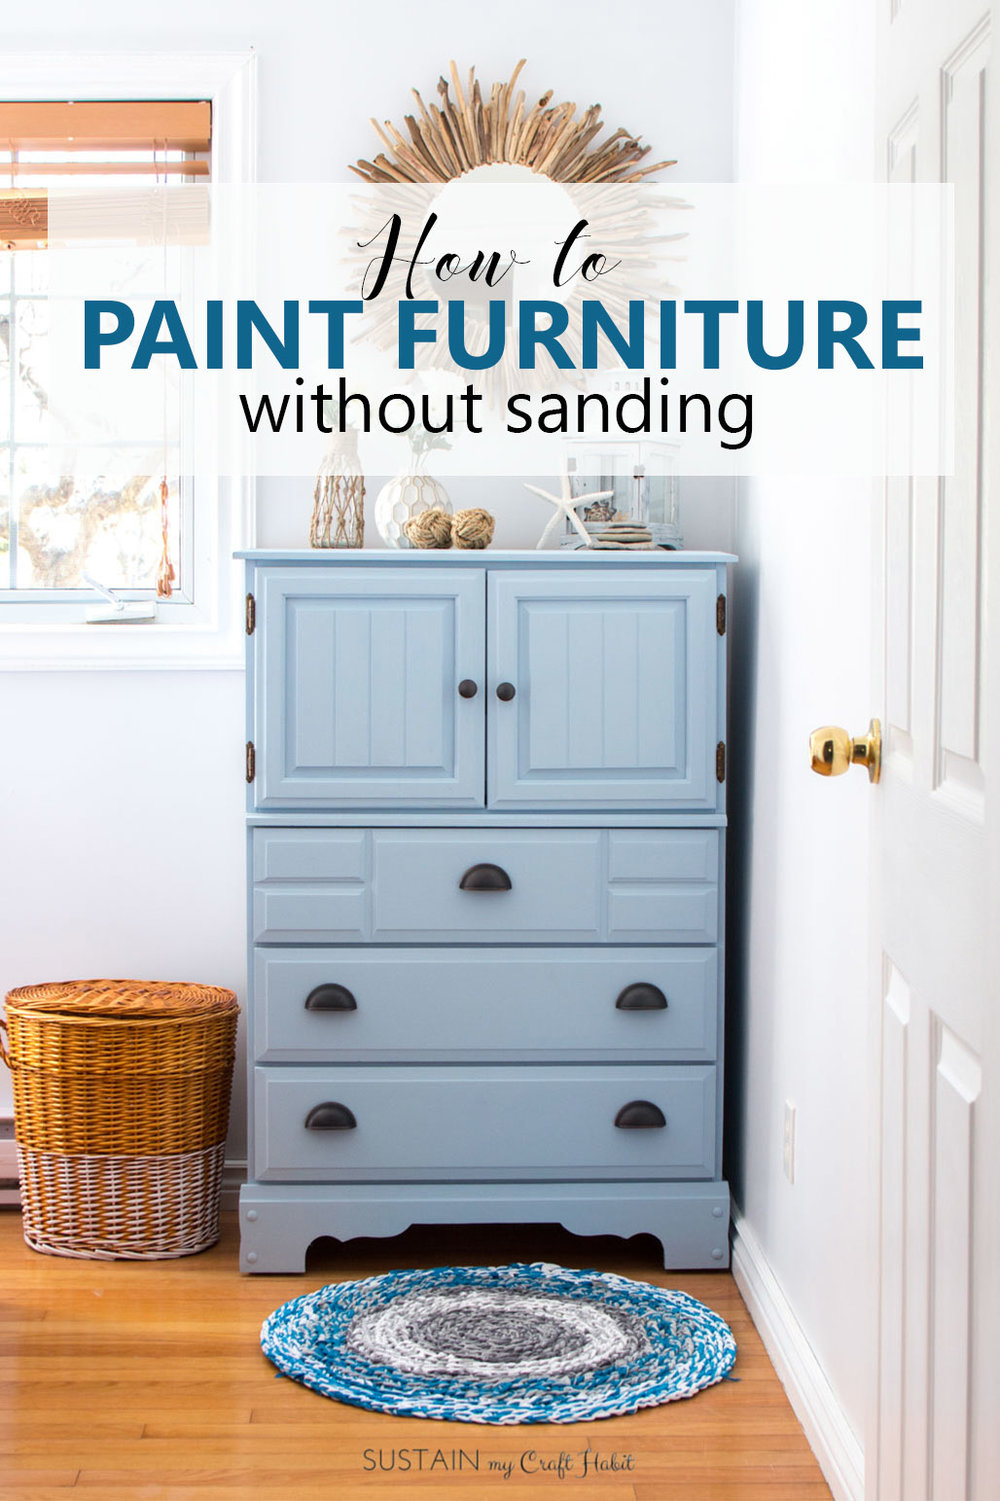 Am going to paint all my furniture now! This tutorial on how to paint furniture without sanding makes furniture upcycling look so easy. The DIY chalk-style paint tall dresser makeover would be perfect for a coastal style cottage, boy's room or nursery.